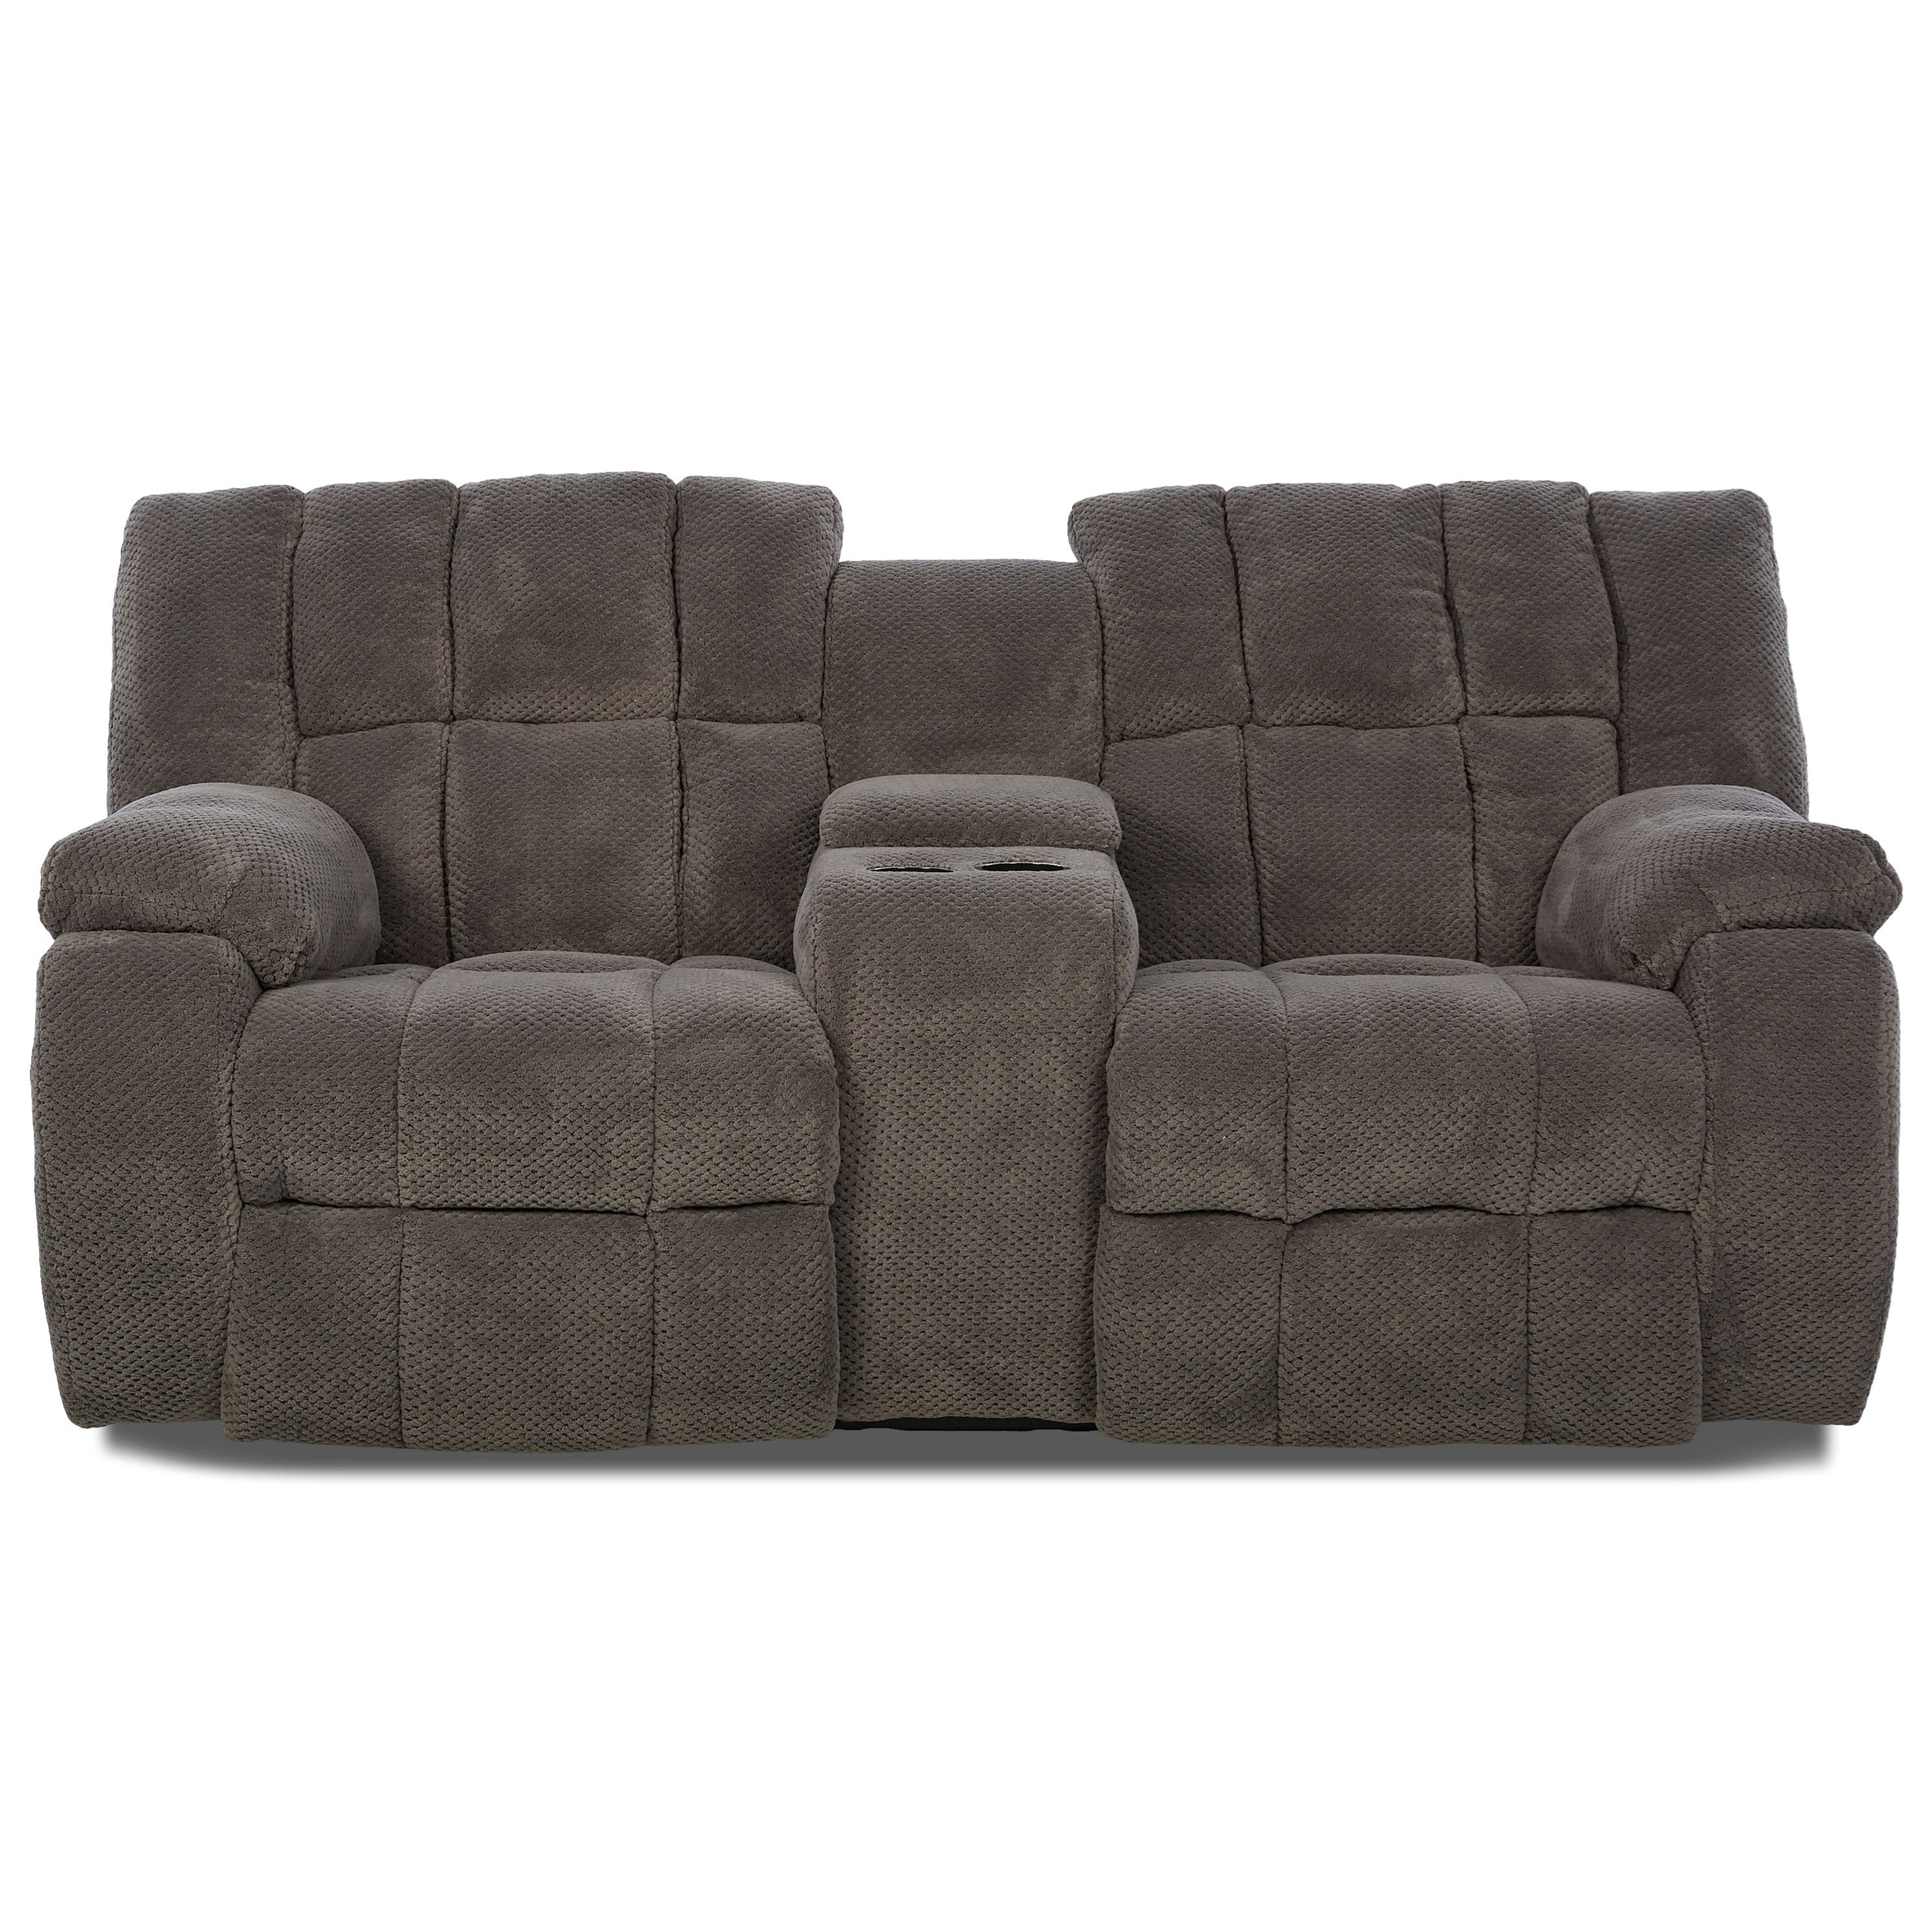 klaussner dozer dozer reclining loveseat with console wayside furniture reclining love seat. Black Bedroom Furniture Sets. Home Design Ideas